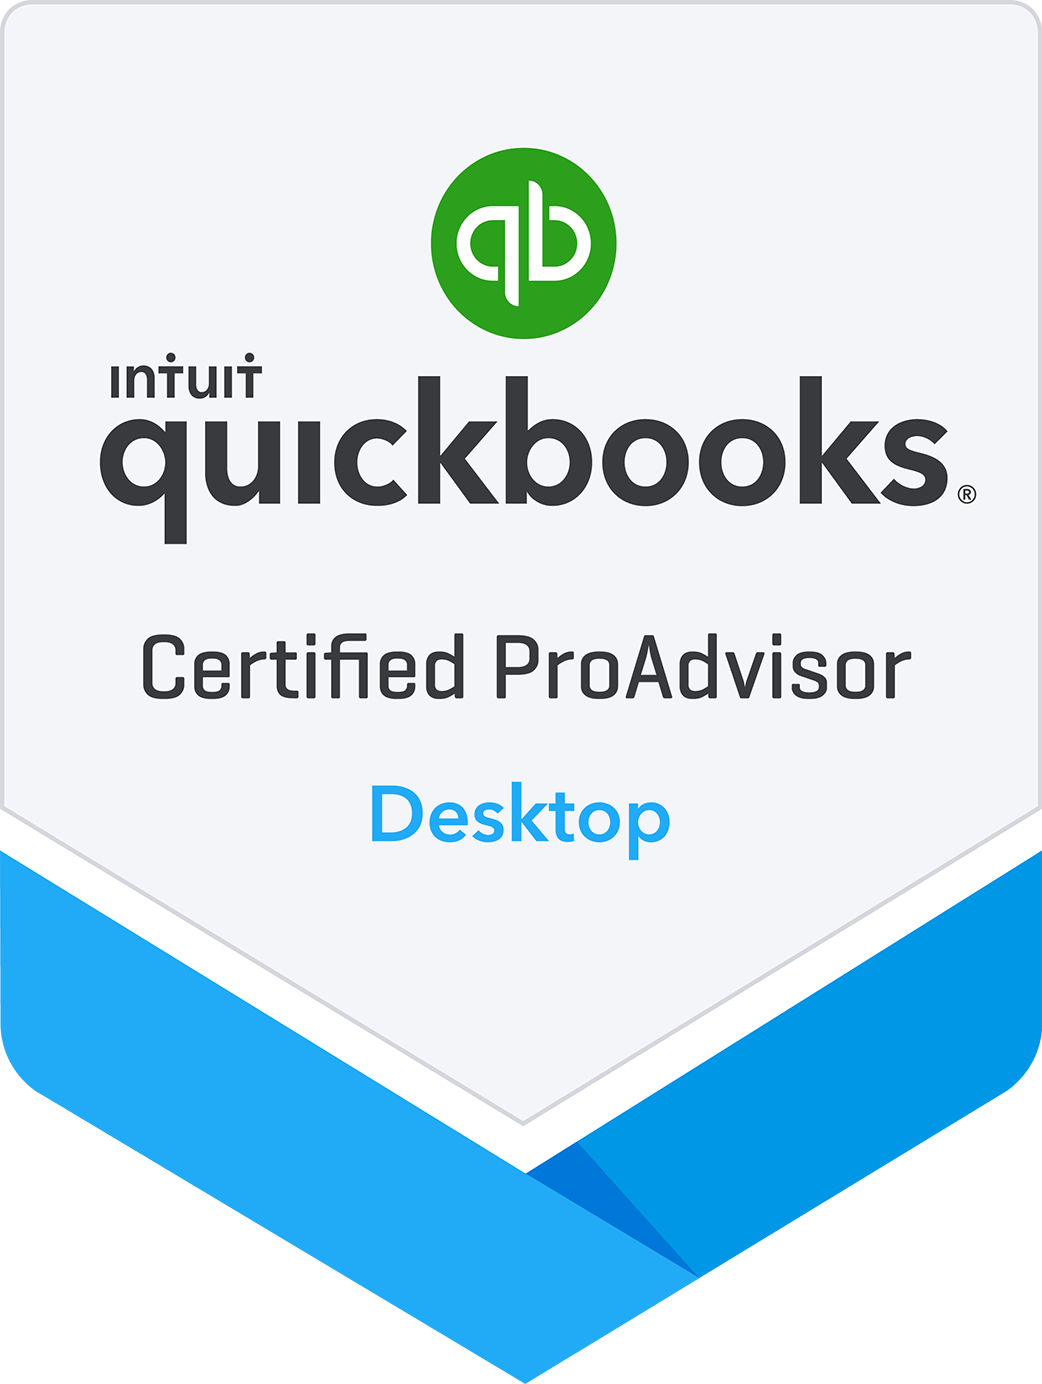 Certified QuickBooks Proadvisor Desktop Badge